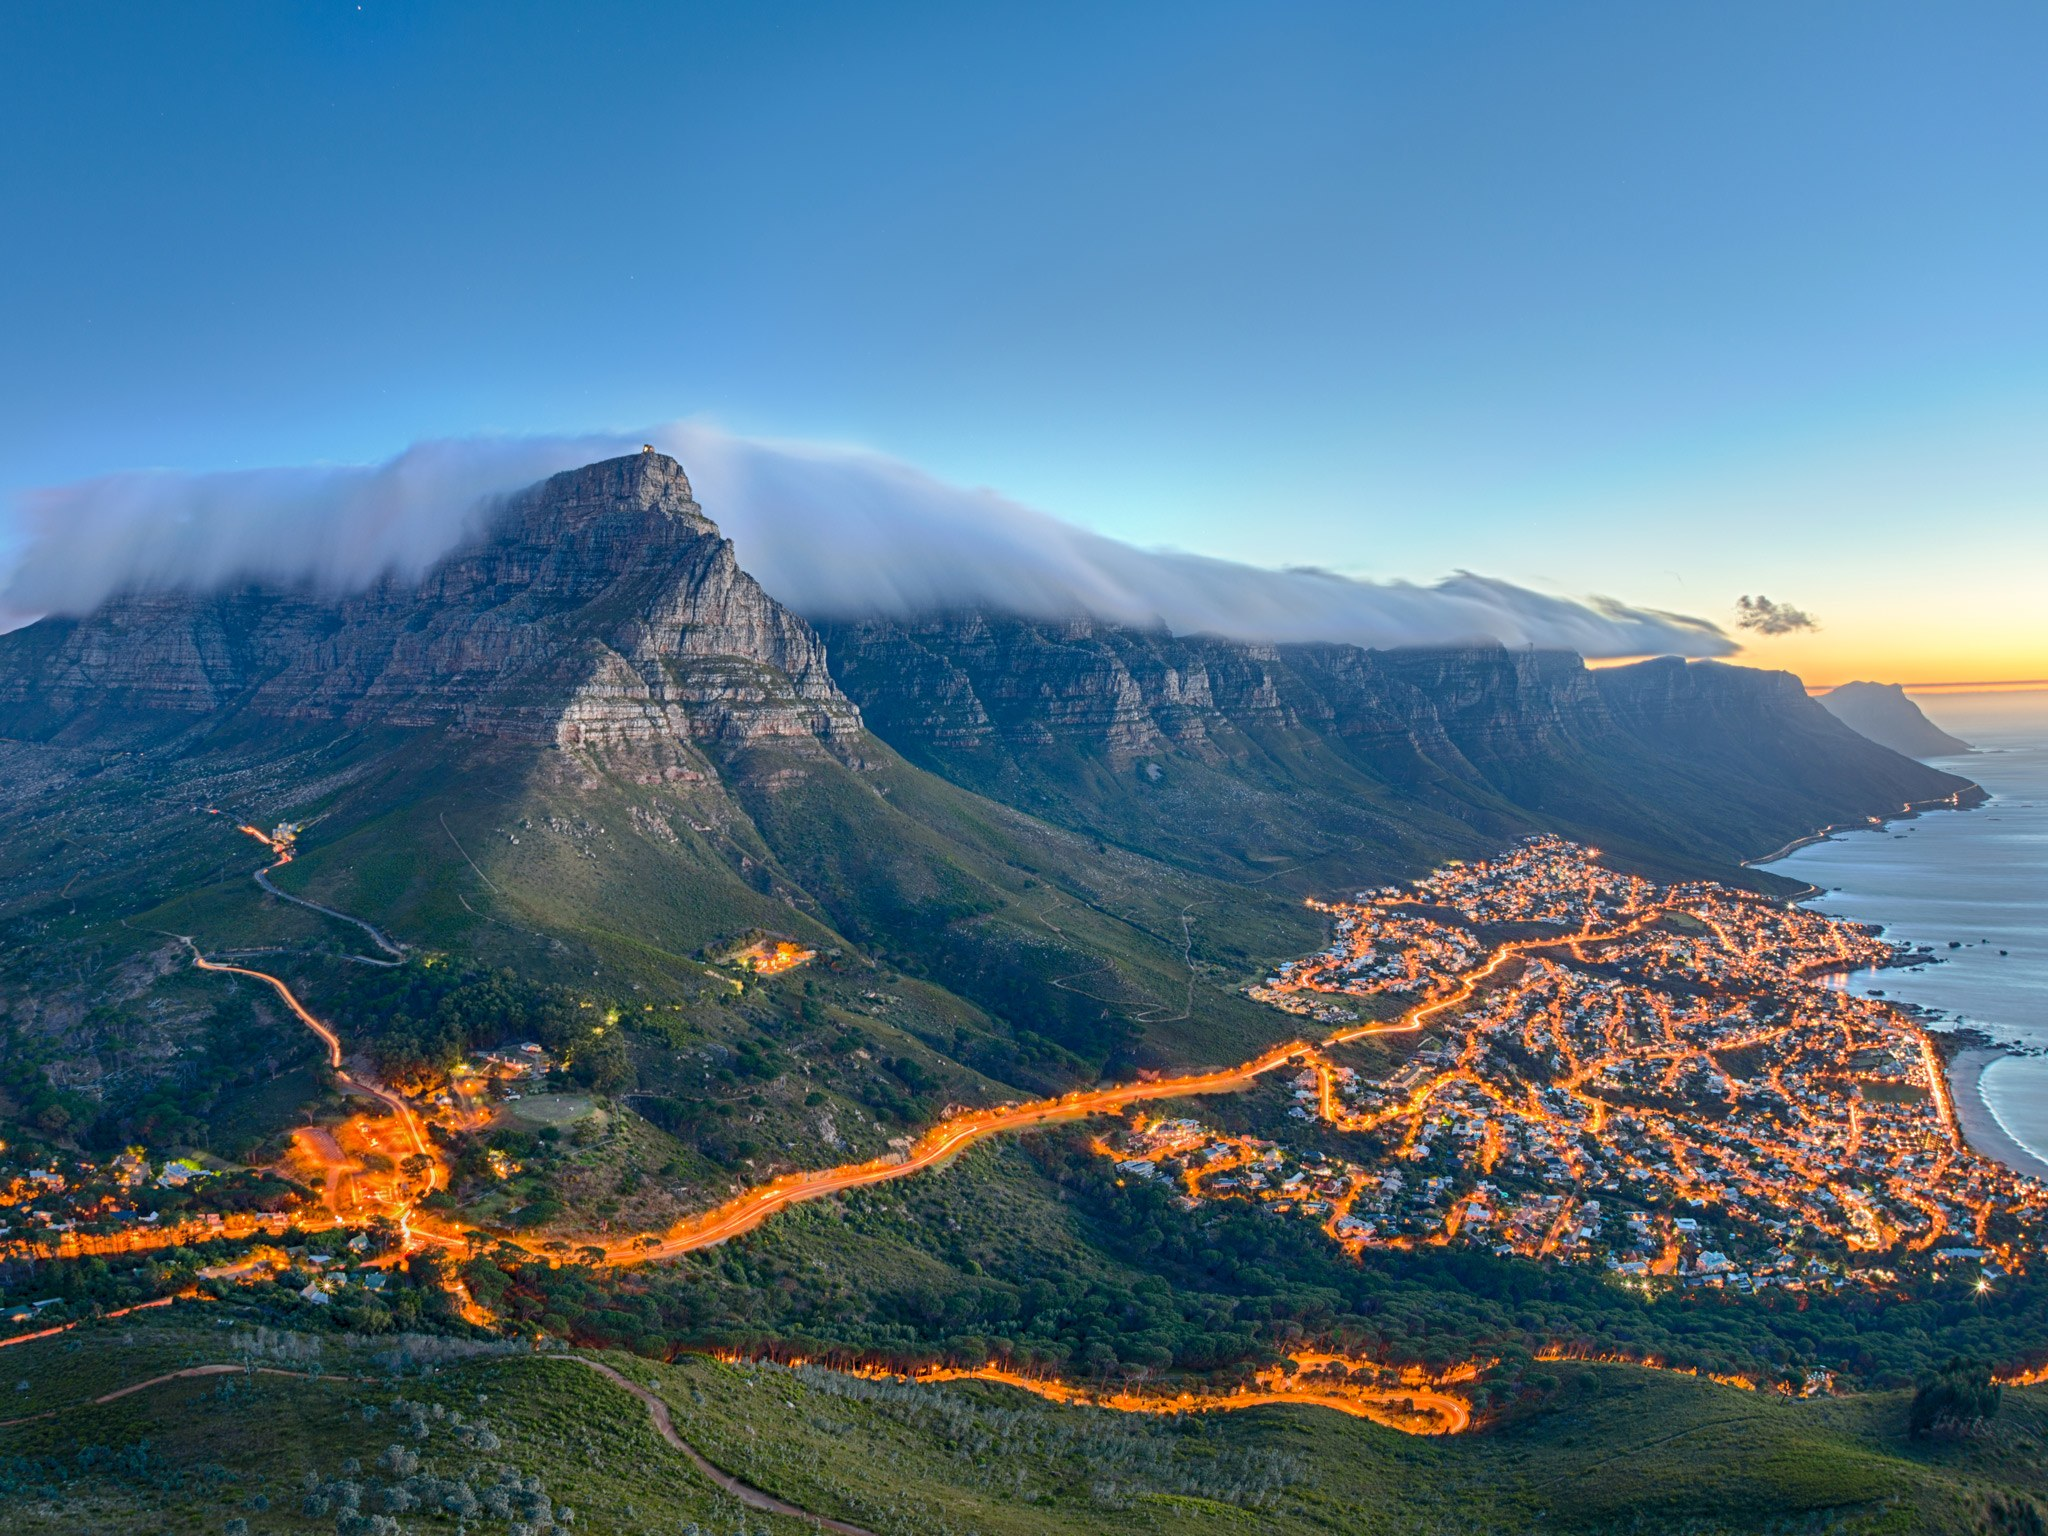 Table Mountain is one of the oldest mountains on the Earth which is found in South Africa.